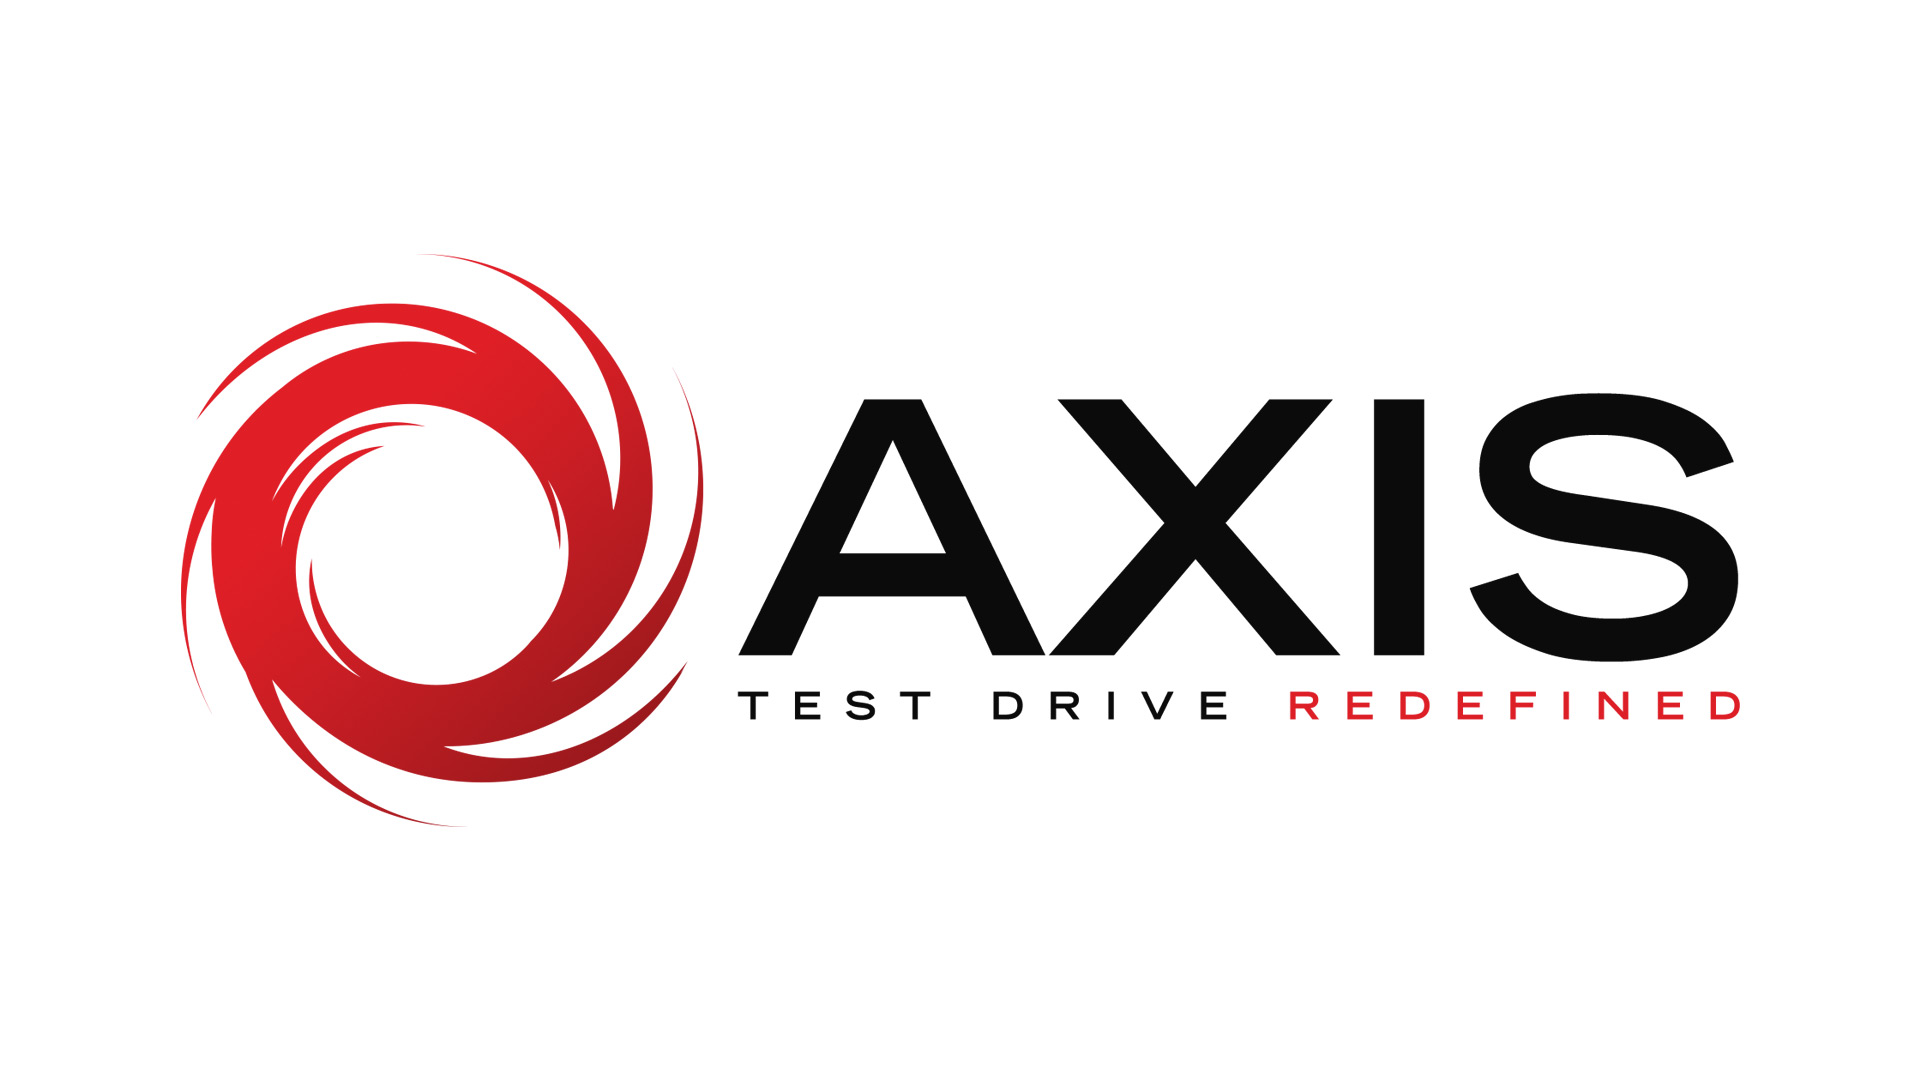 AXIS Dyno Web Design